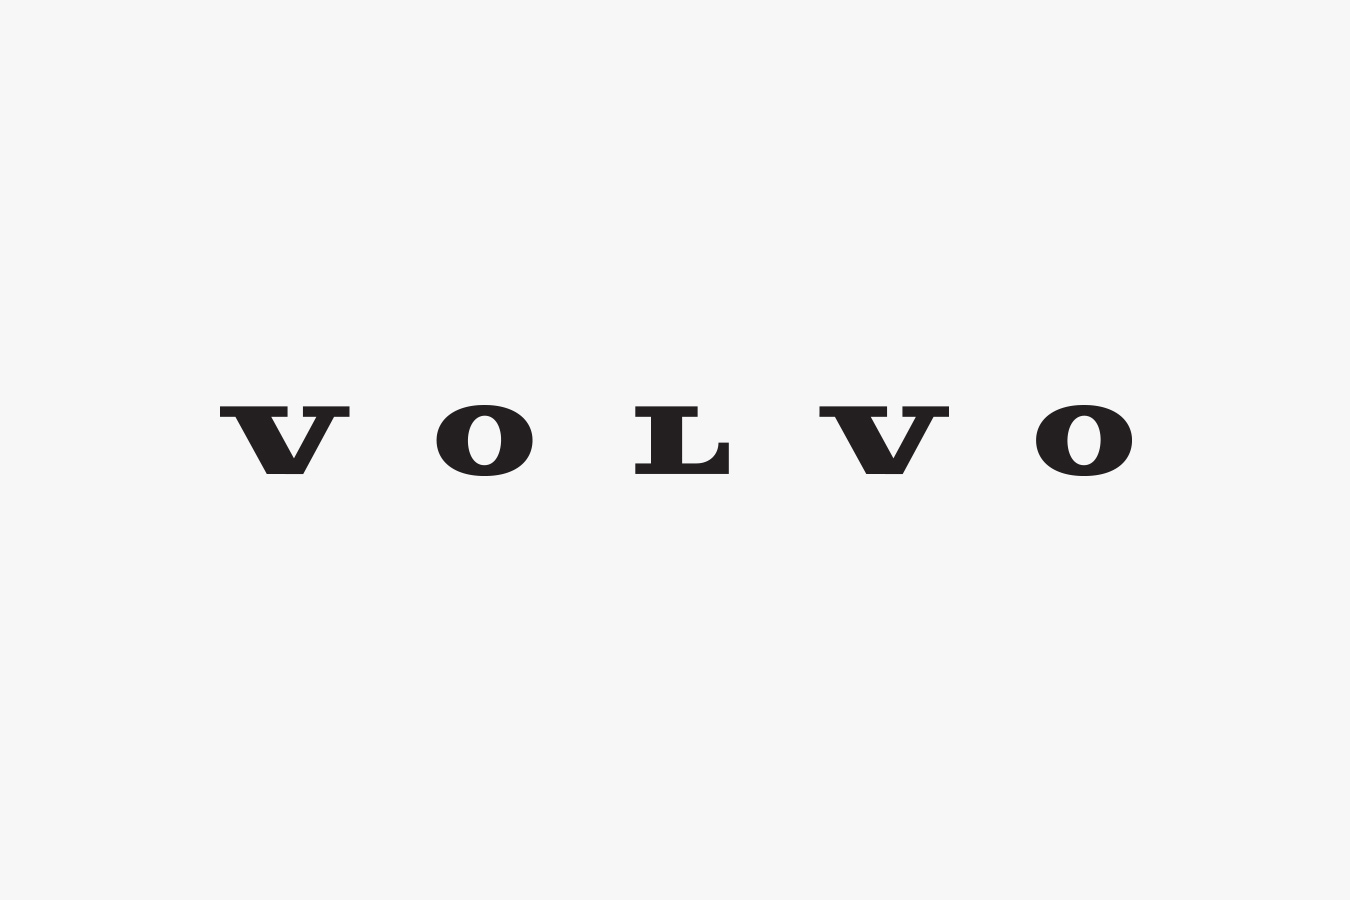 Volvo Logos - Iron Mark PMS 2014